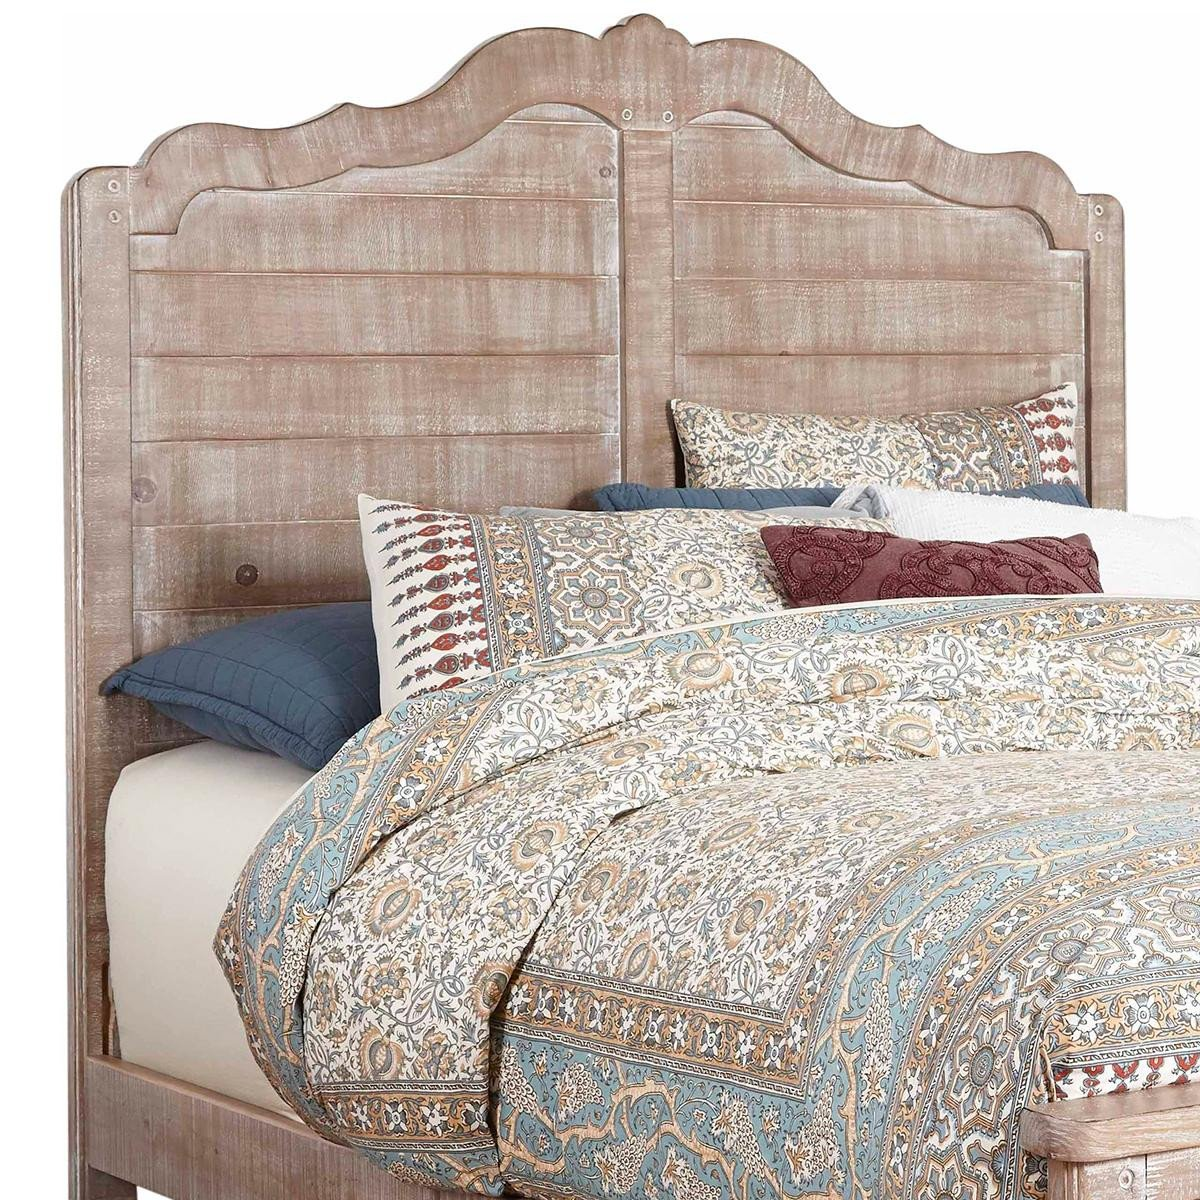 Distressed Wood Bedroom Furniture Unique Tiddal Home Chatsworth King Panel Bed In Chalk Distressed